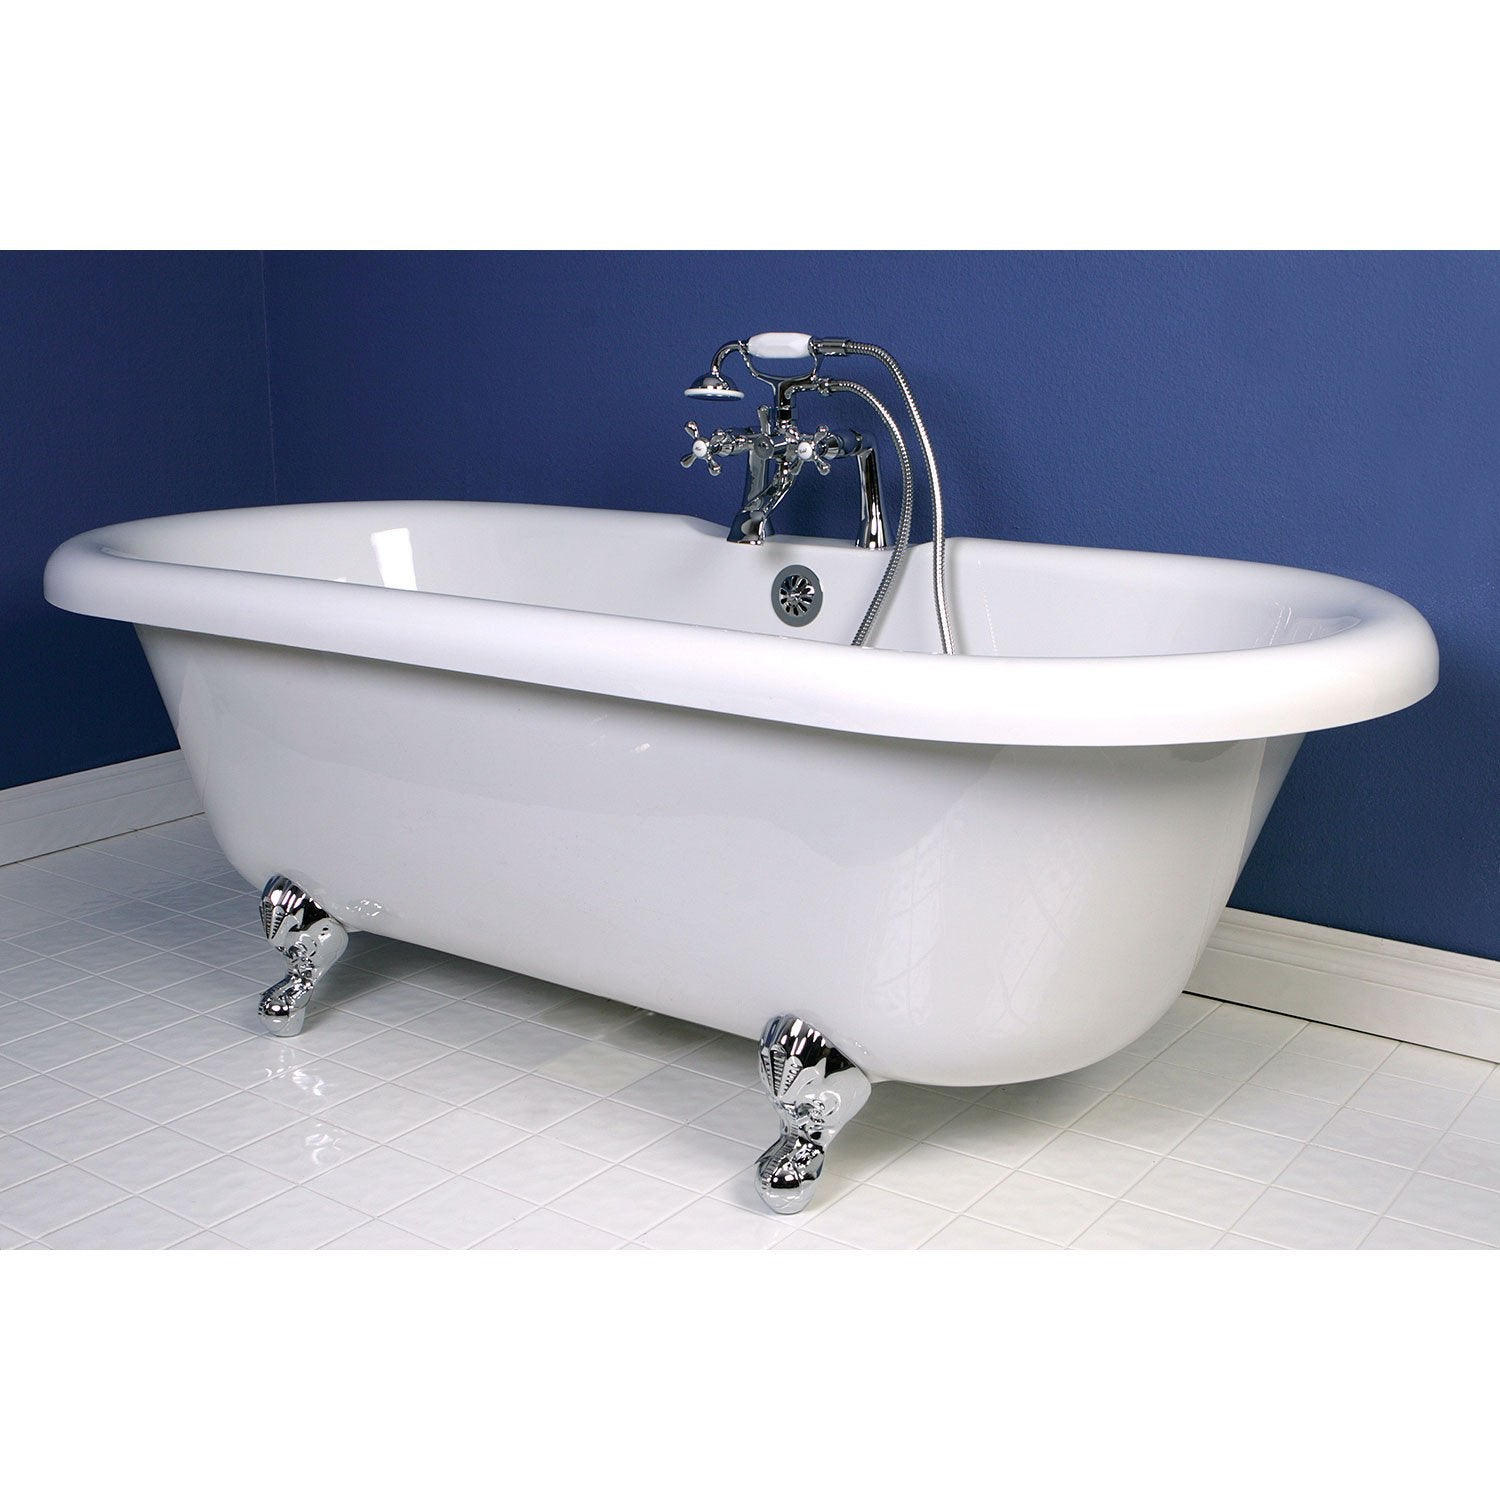 "67"" Acrylic Clawfoot Tub with Chrome Tub Filler Faucet & Hardware Package CTP44"